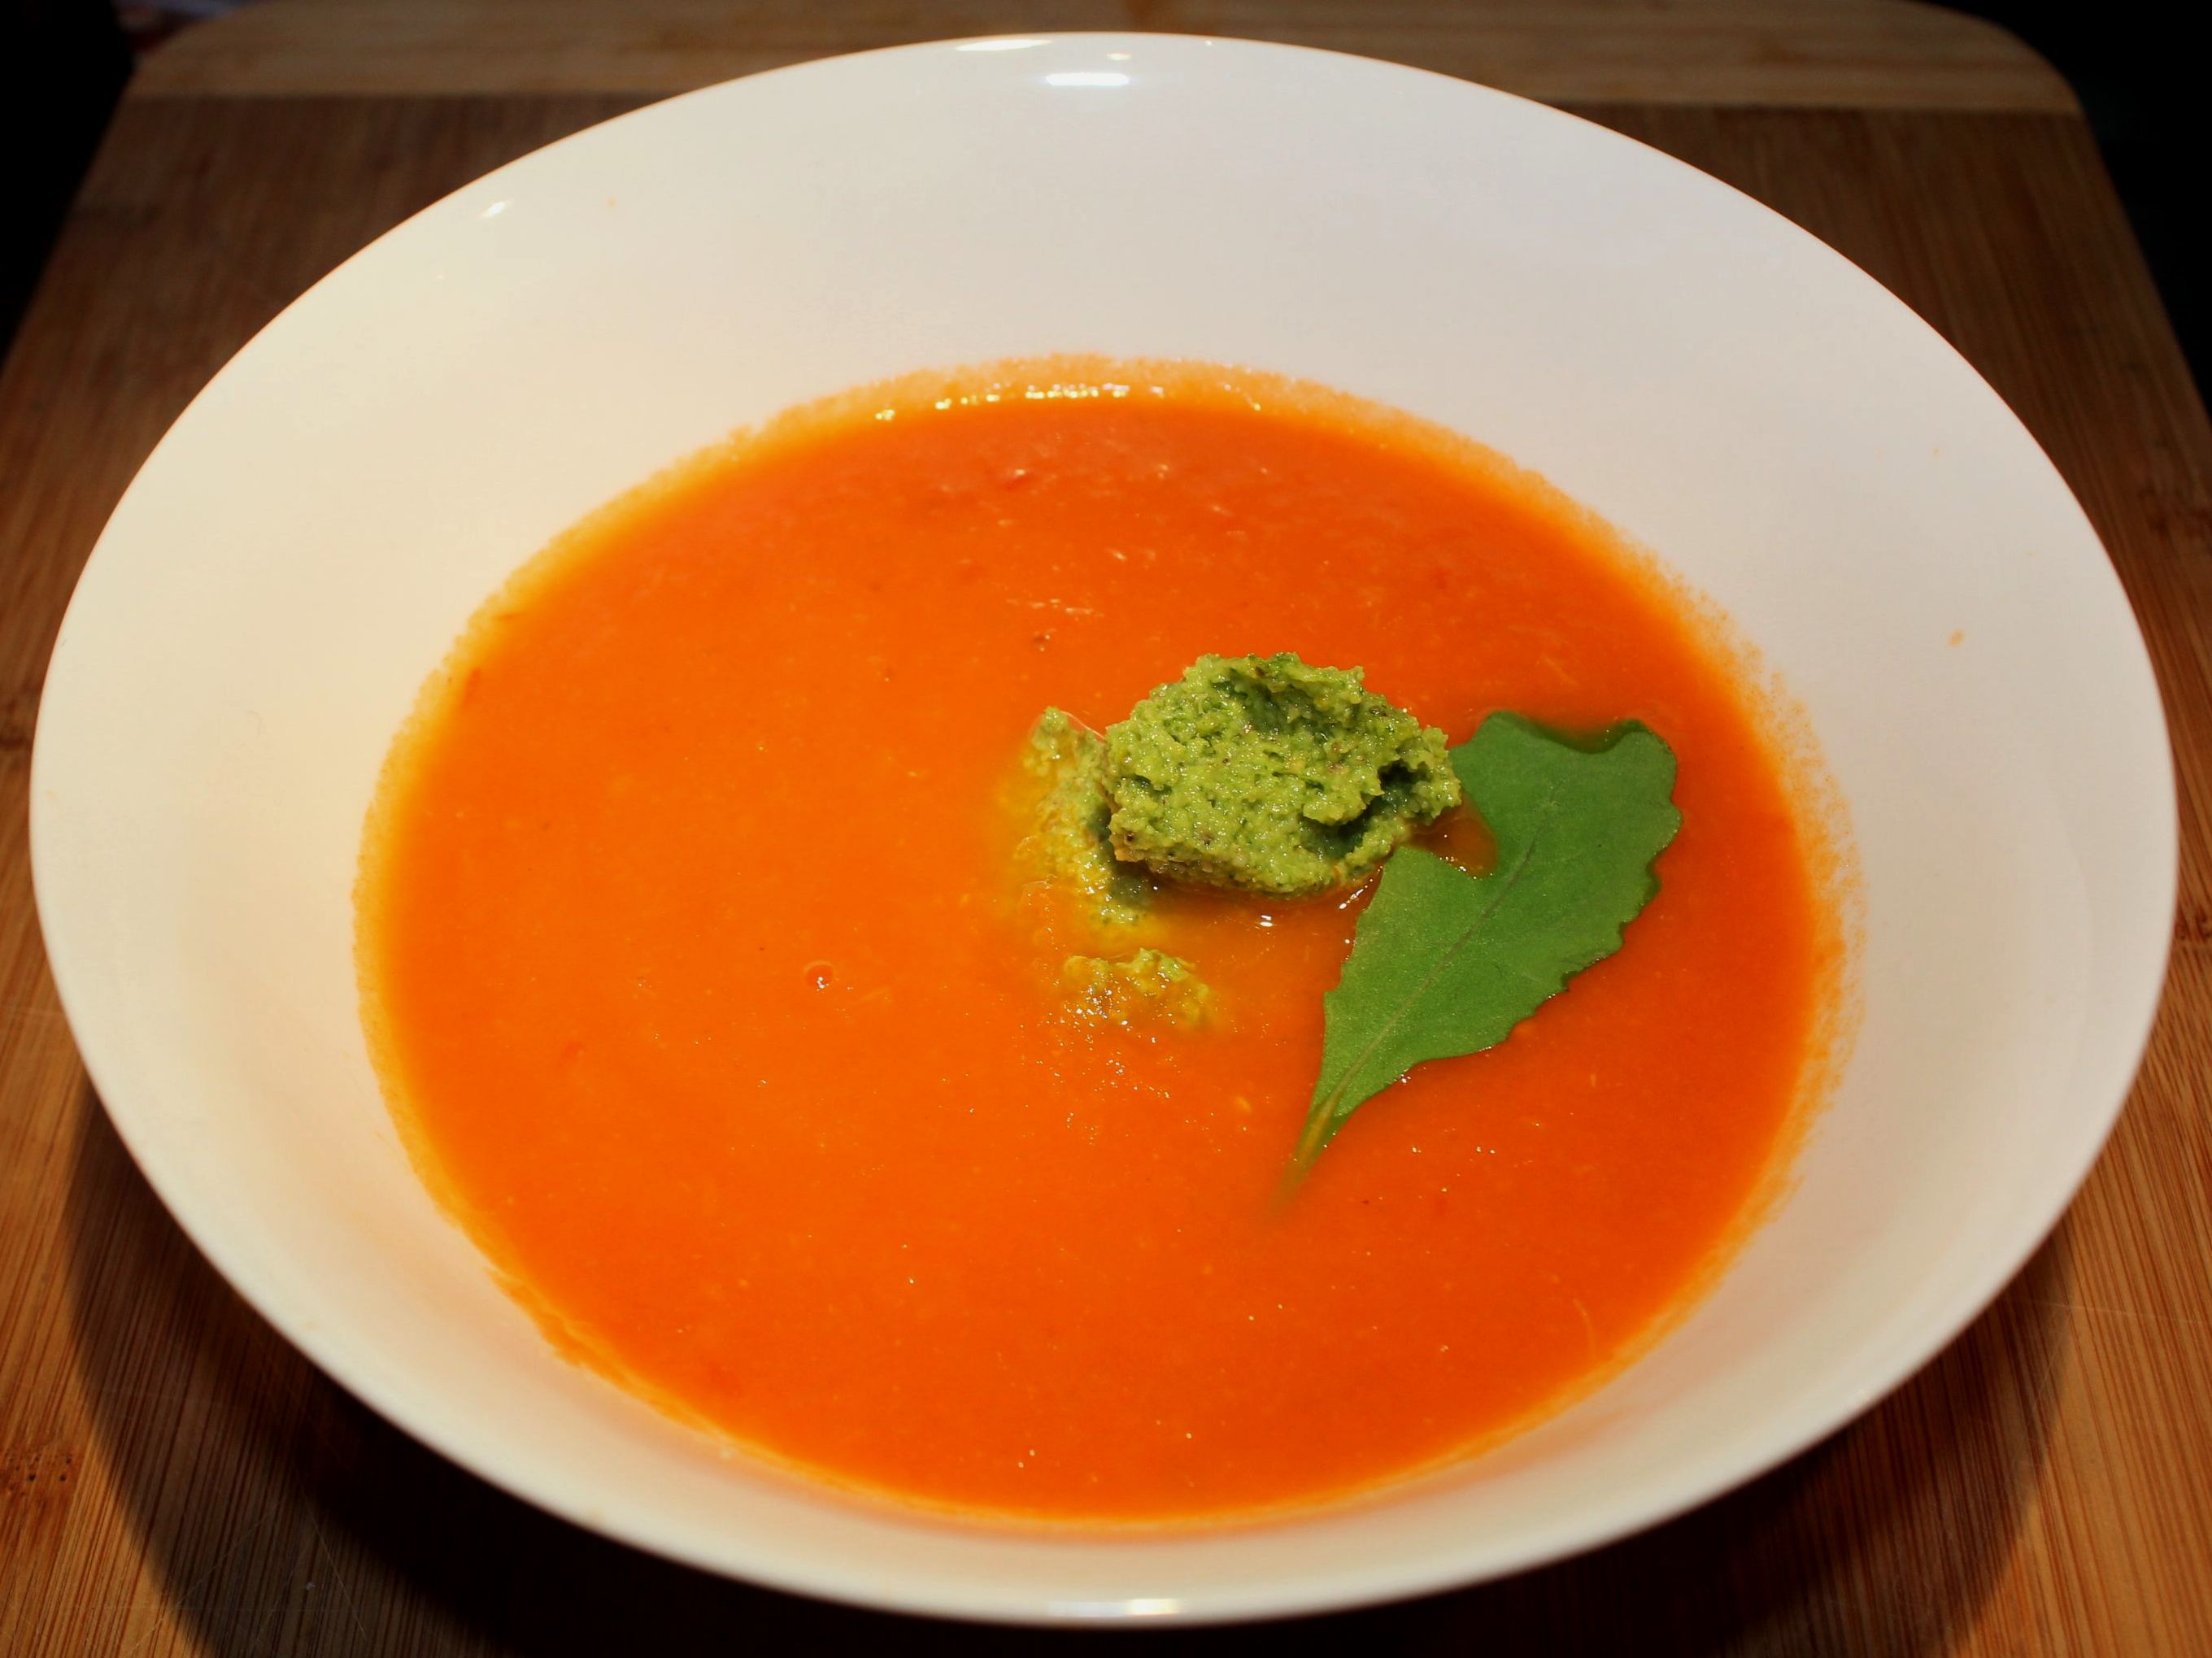 Spicy Tomato Soup with Rocket Pesto | The Foodie Librarian